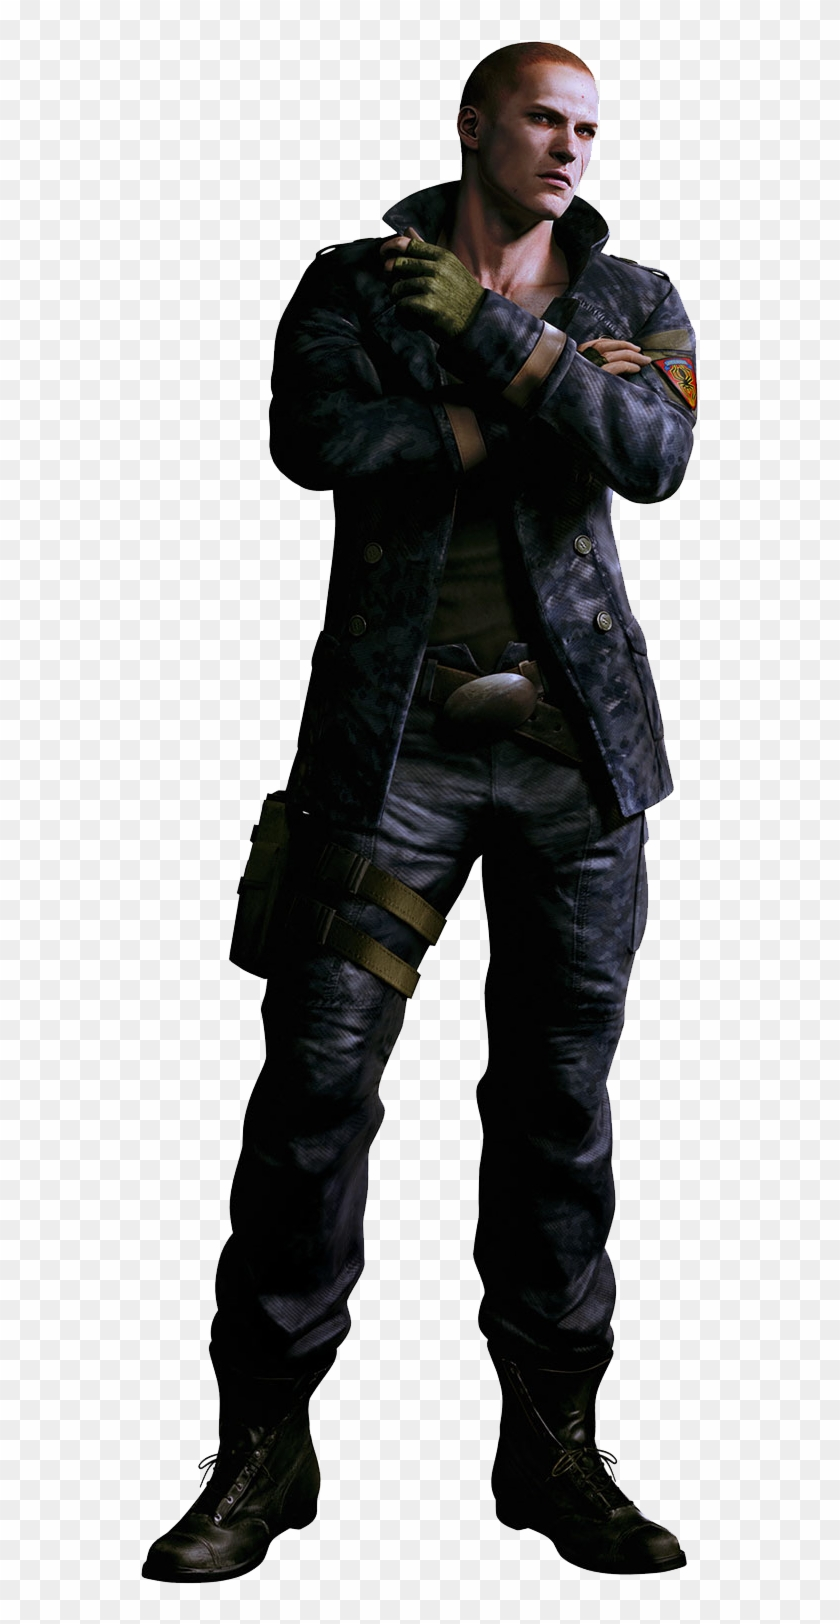 Leon Chris Jake Jake Do Resident Evil 6 Clipart 4826089 Pikpng